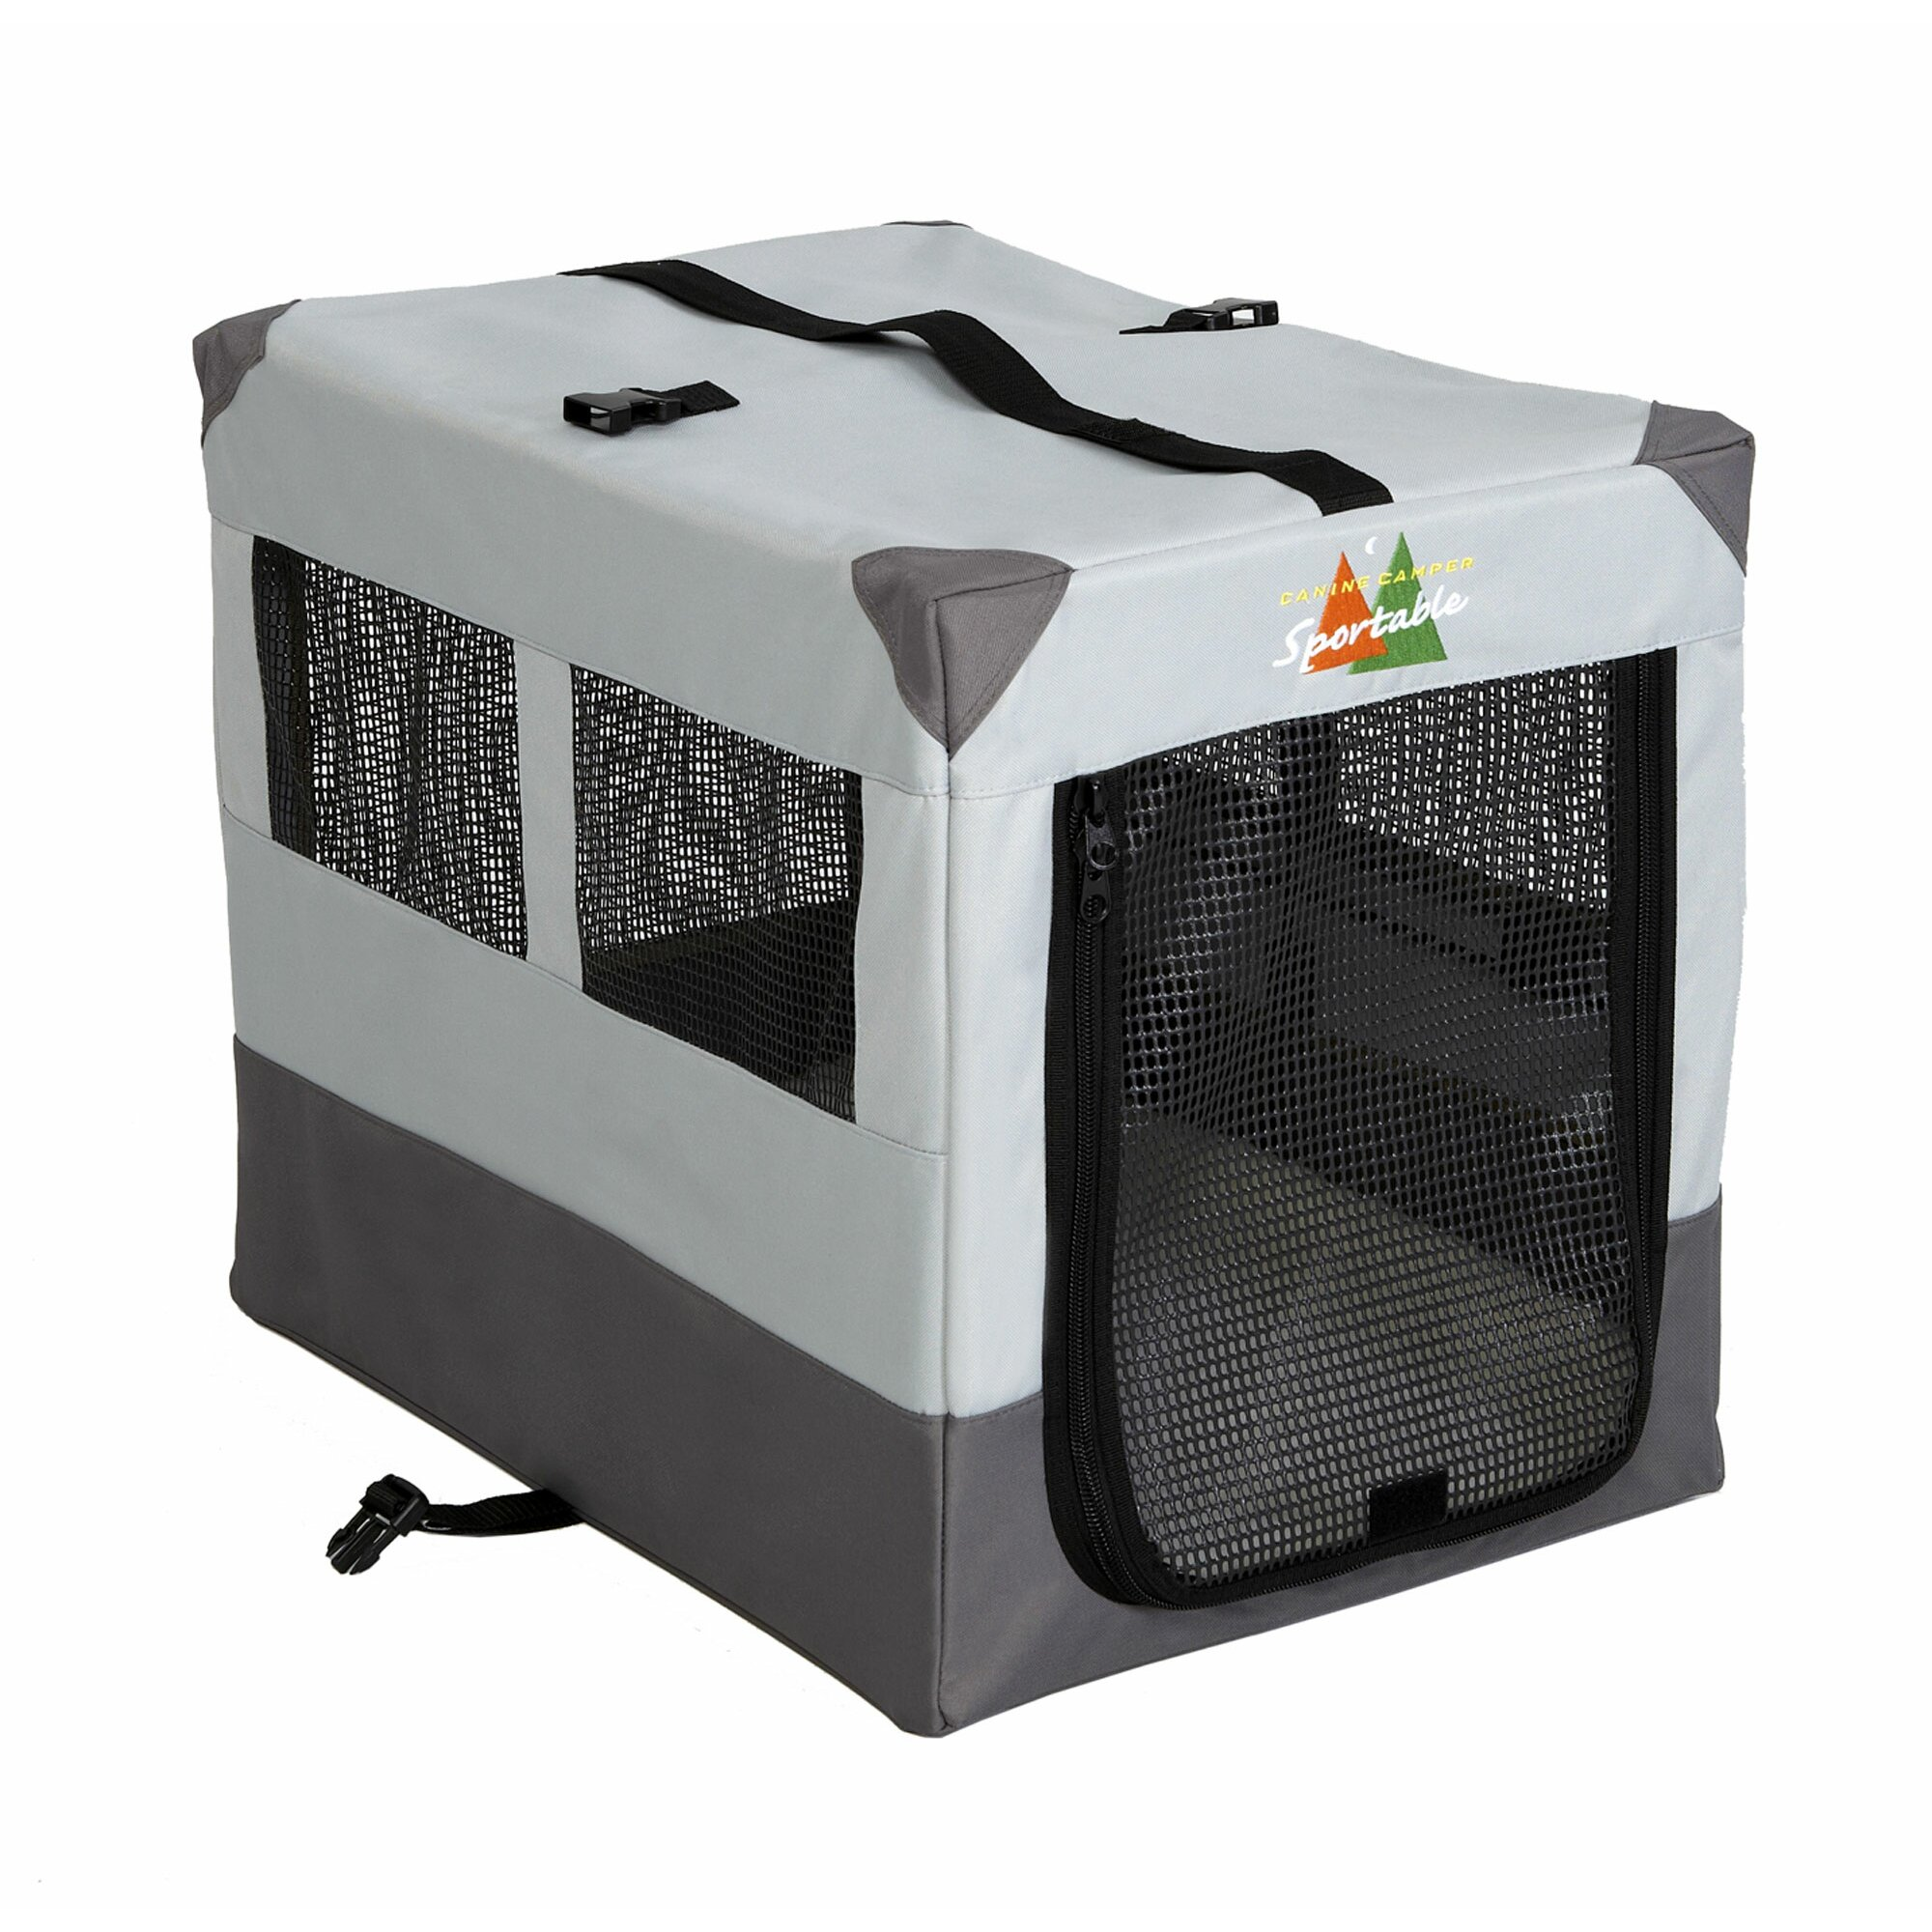 Table Pliante Walmart Of Midwest Homes For Pets Canine Camper Sportable Tent Pet